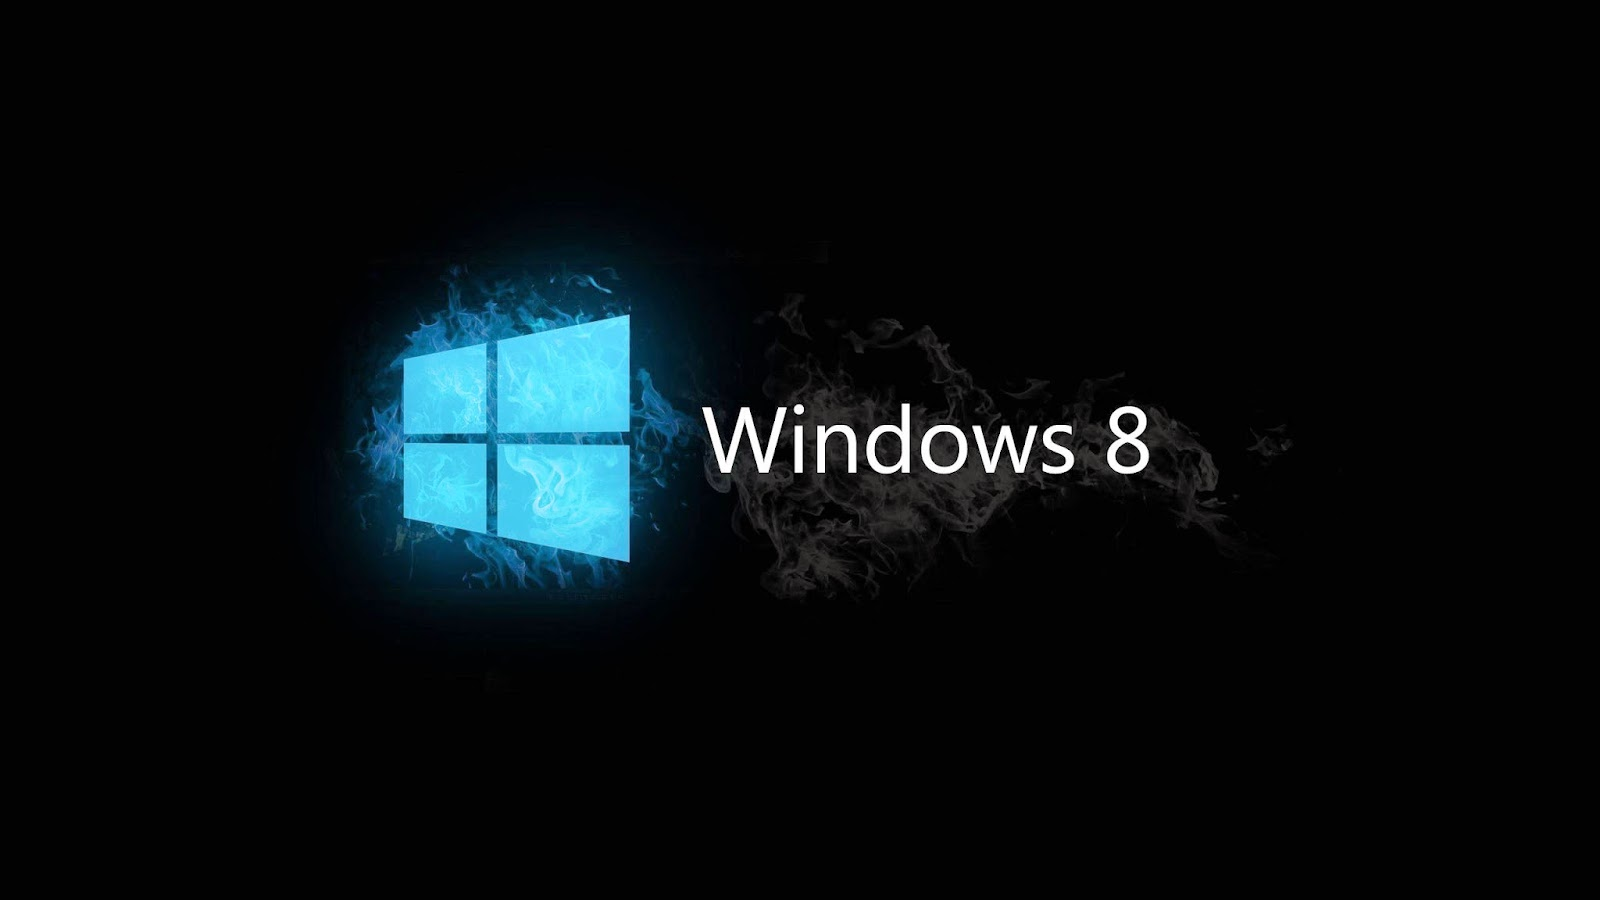 Latest-new-windows8-wallpaper-black-background-HD-PC-laptop.jpg